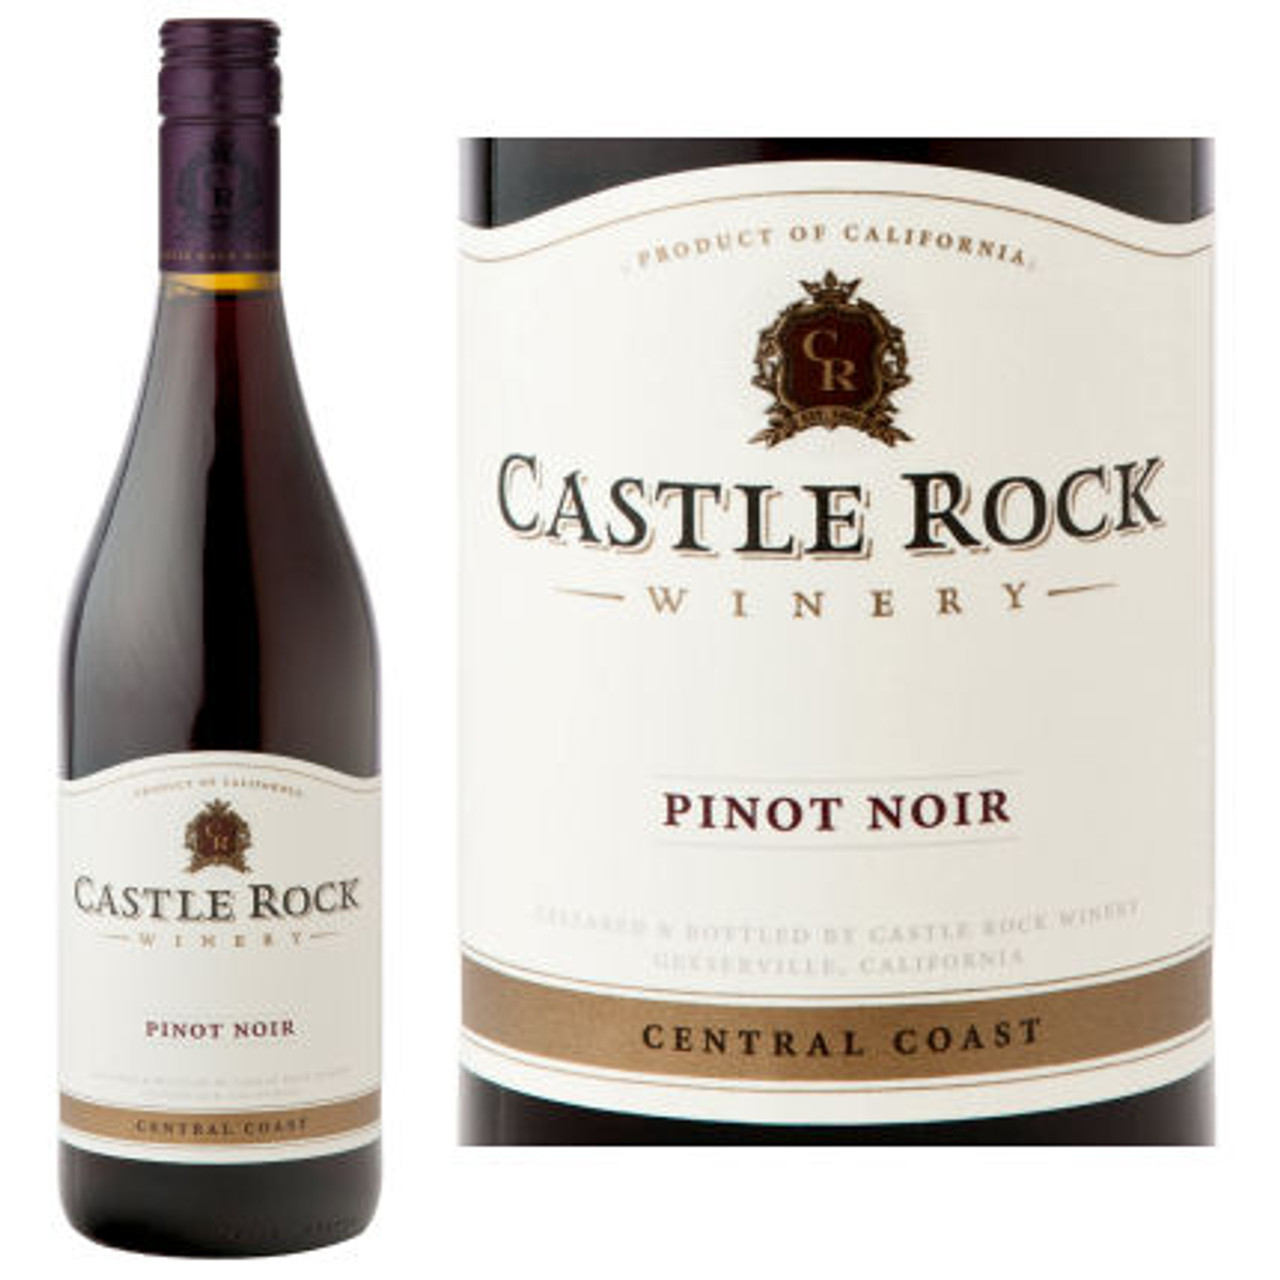 Castle Rock Central Coast Pinot Noir